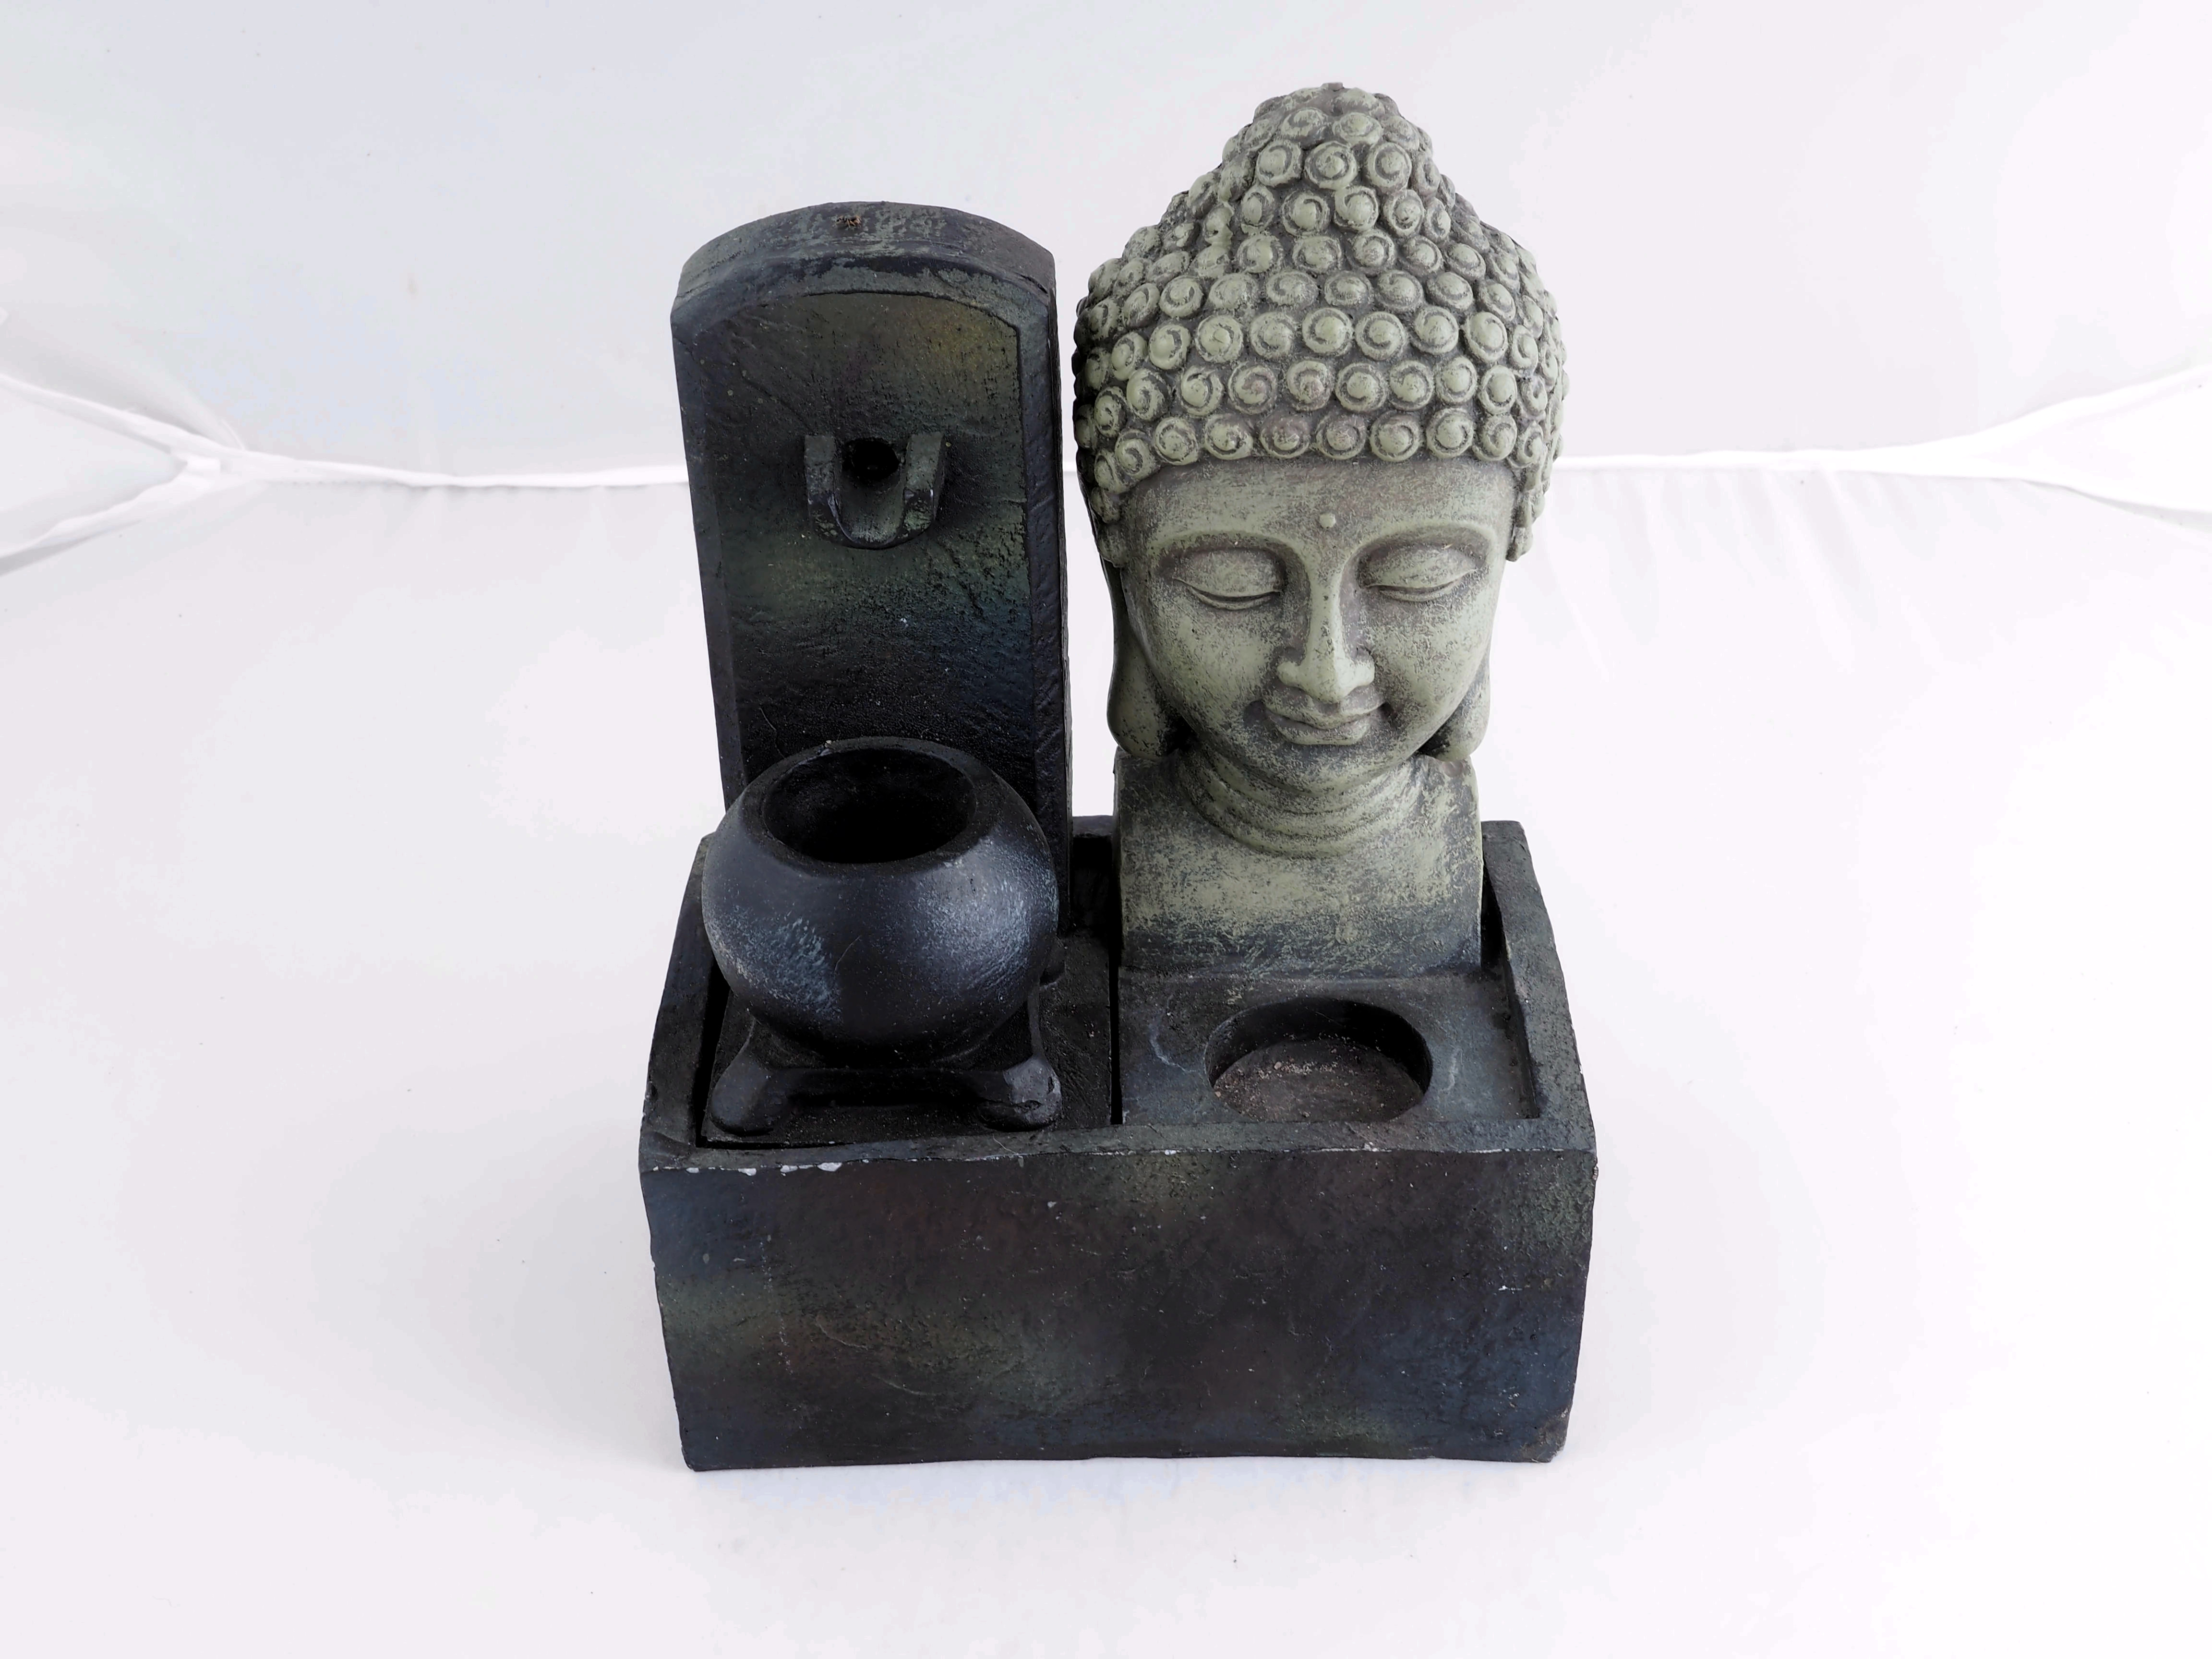 This should be Buddha-1.jpeg.  Is it missing?